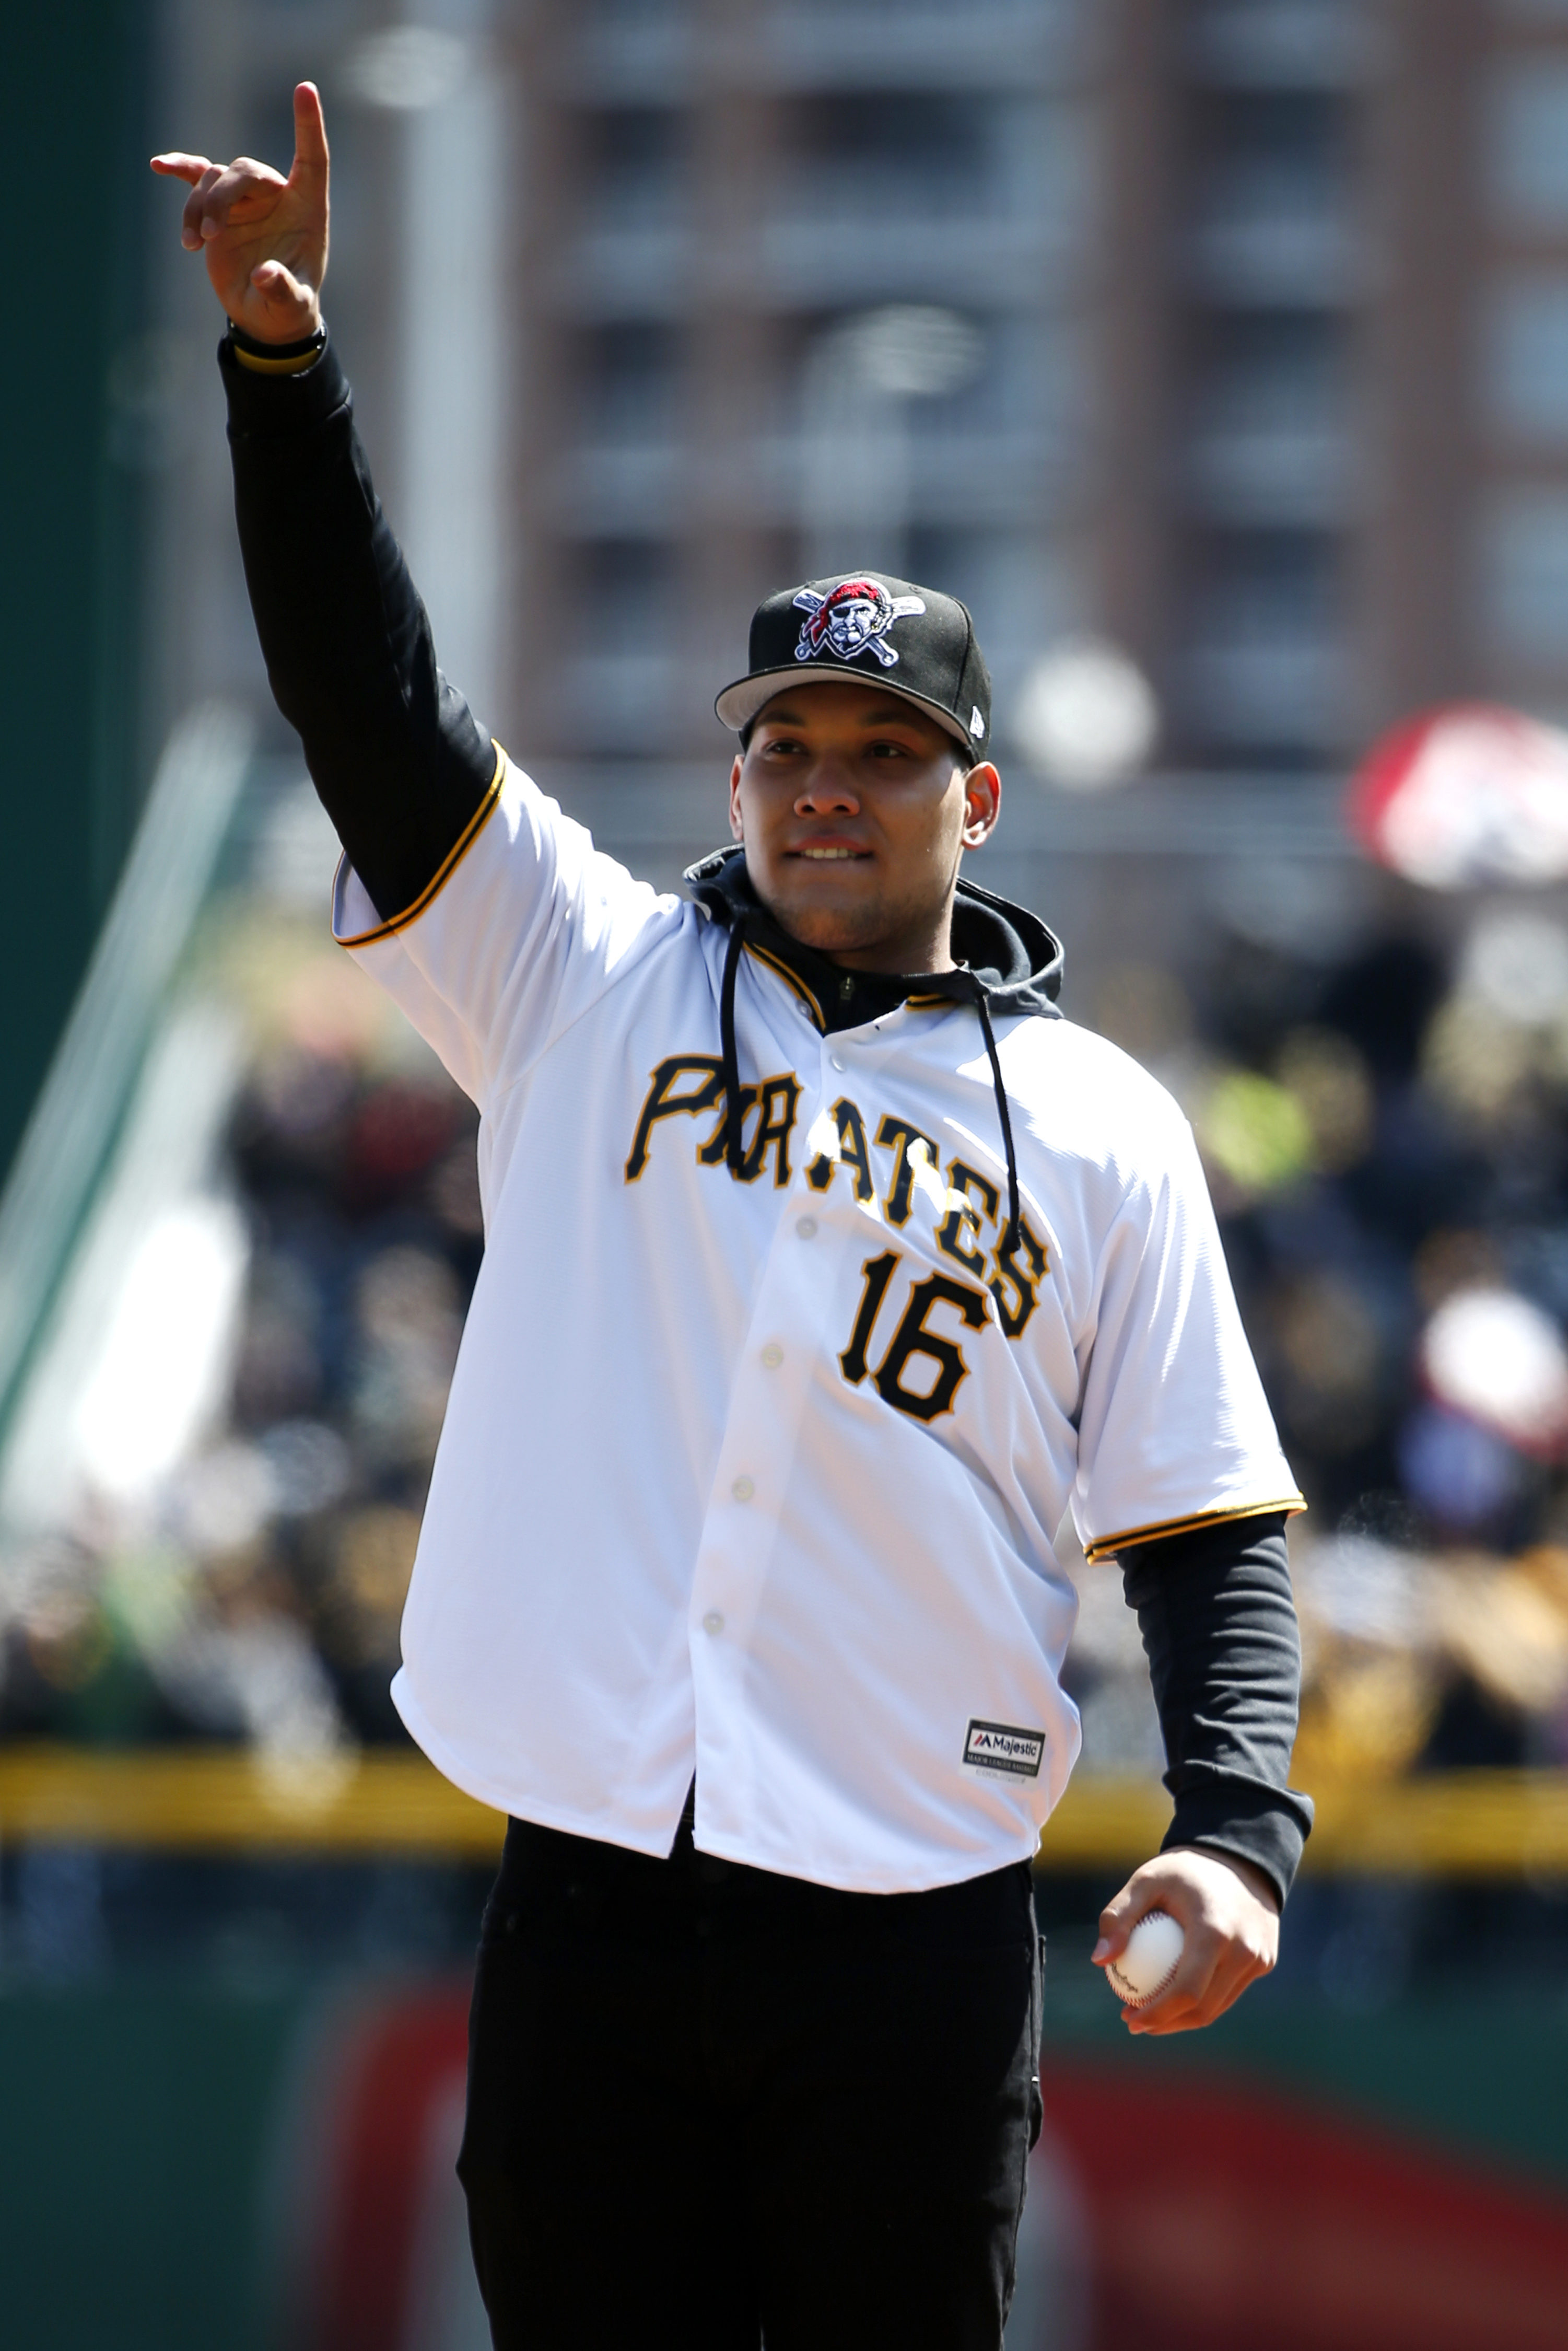 wbbUniversity of Pittsburgh running back James Connor waves from the mound while throwing out the ceremonial first pitch before the first Major League Baseball game of the season between the Pittsburgh Pirates and the St. Louis Cardinals in Pittsburgh, Su